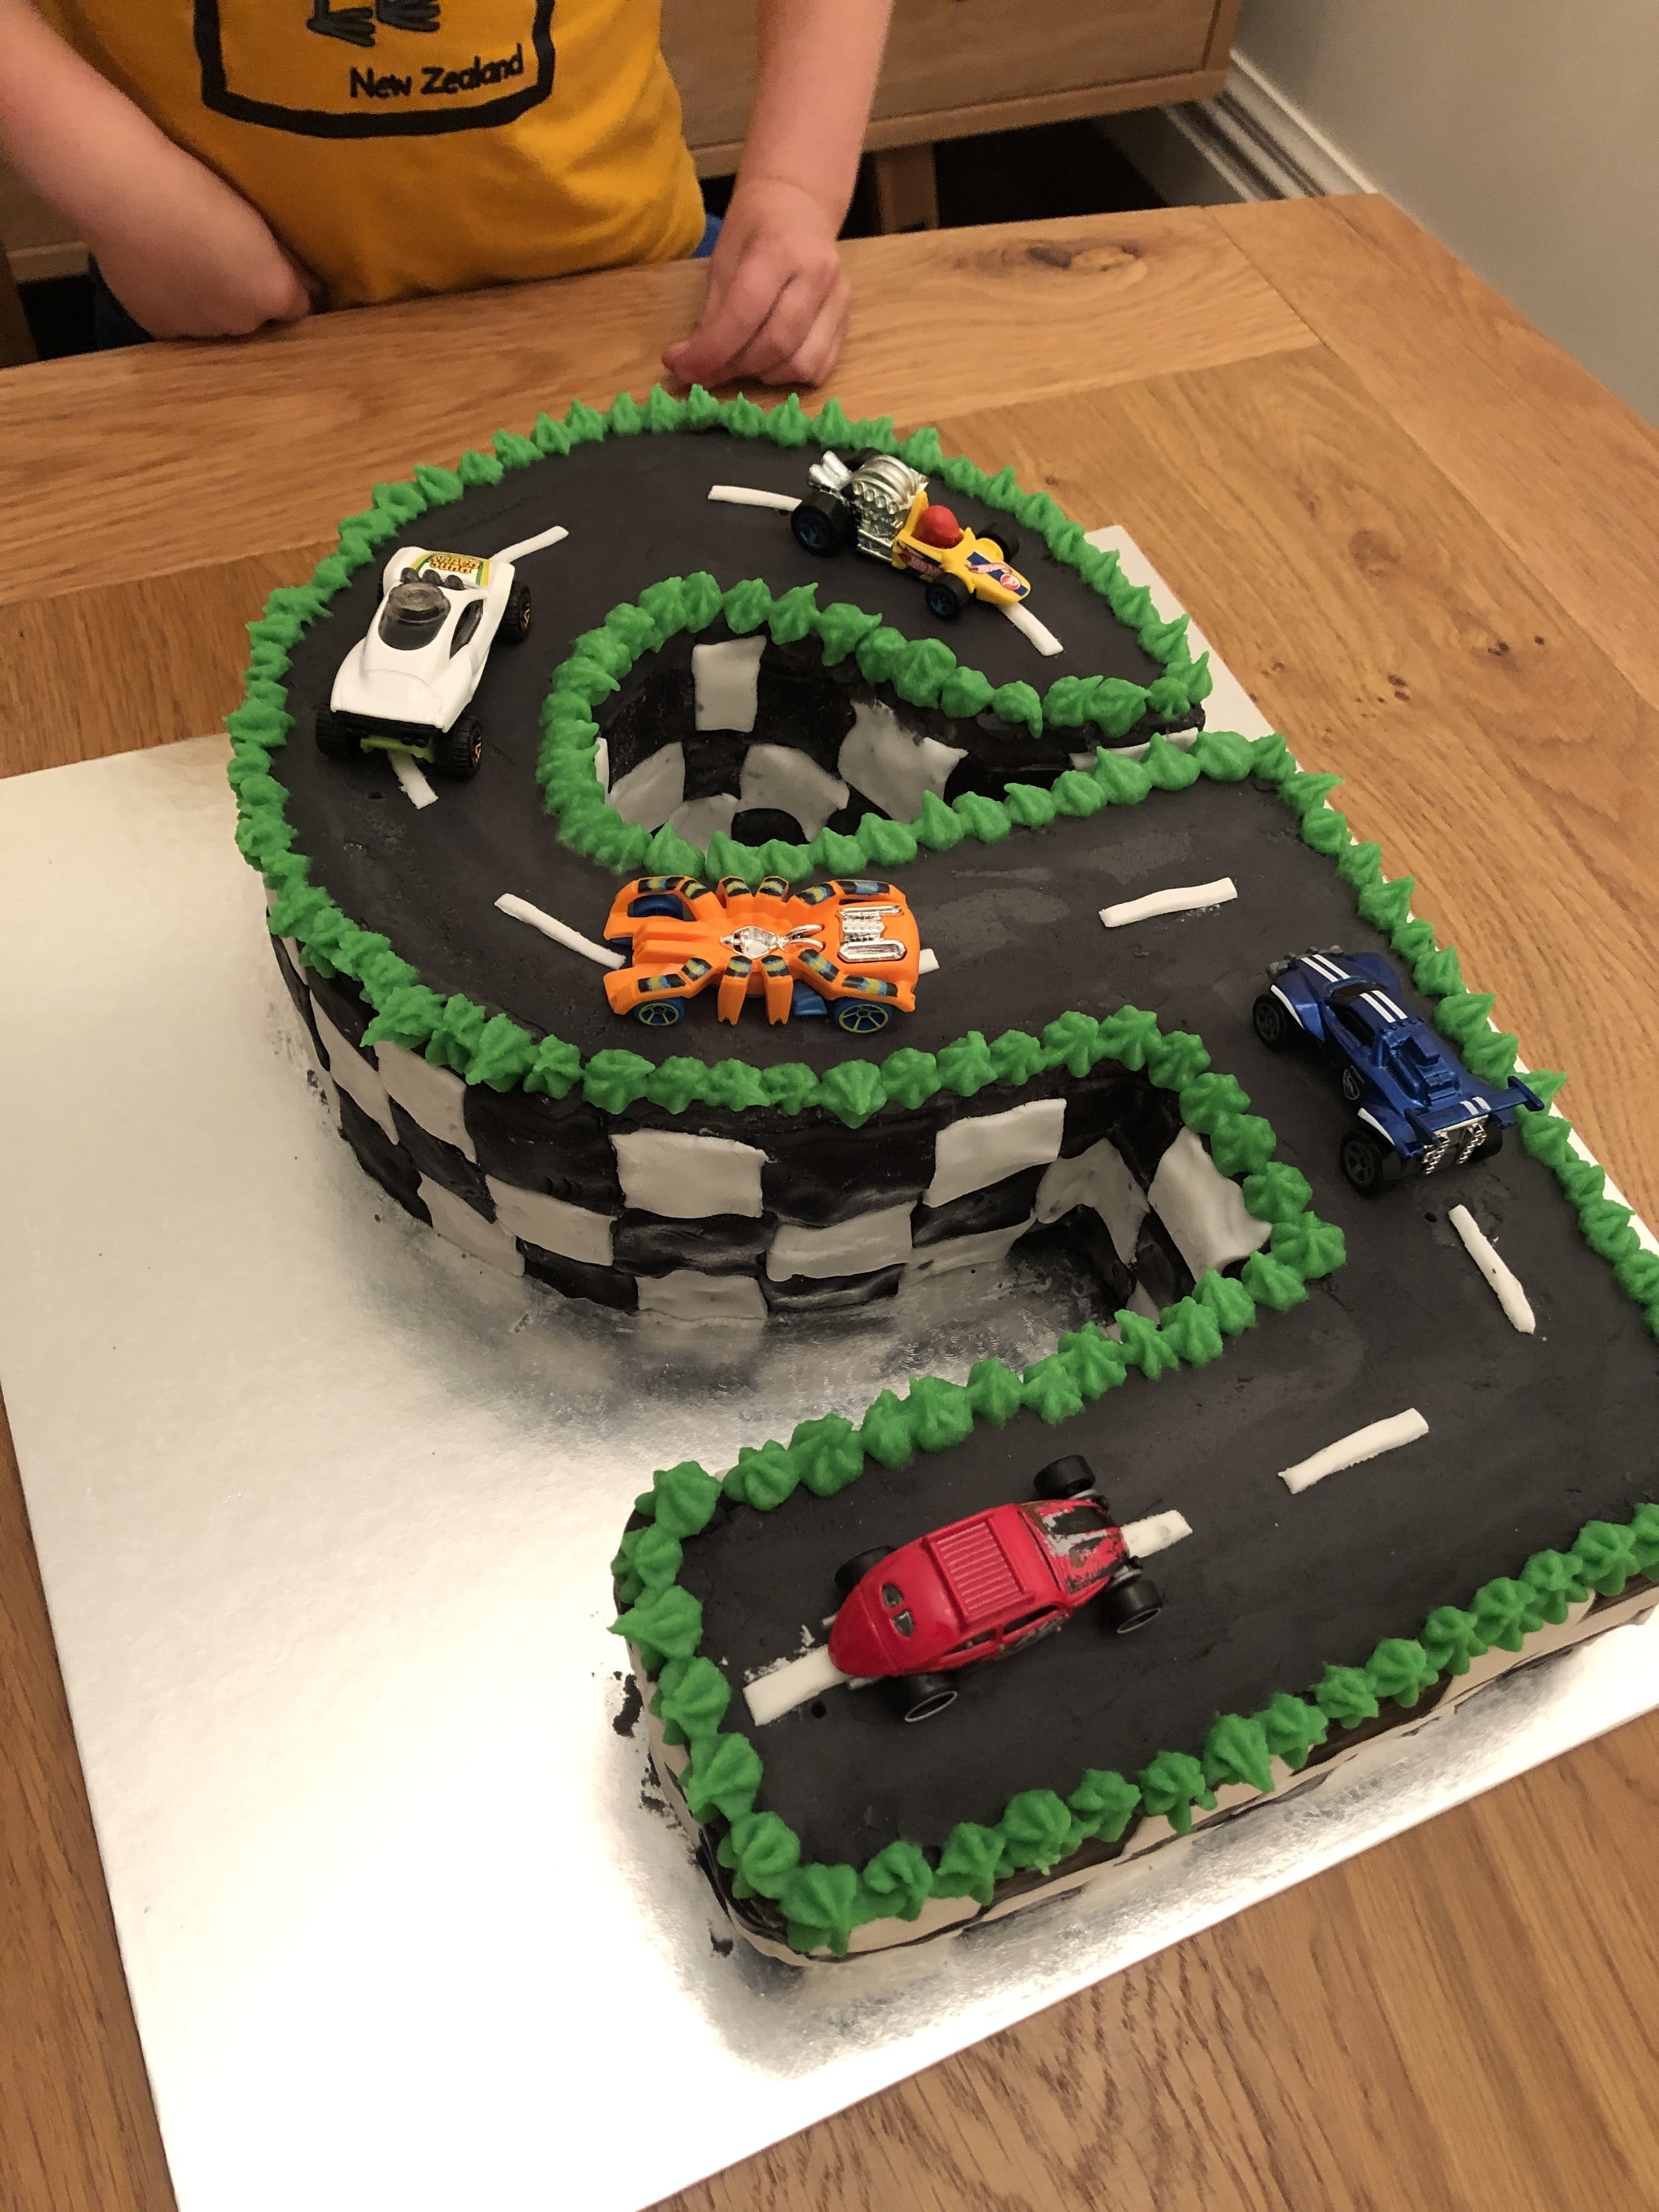 Seb had a giant 5 race track cake